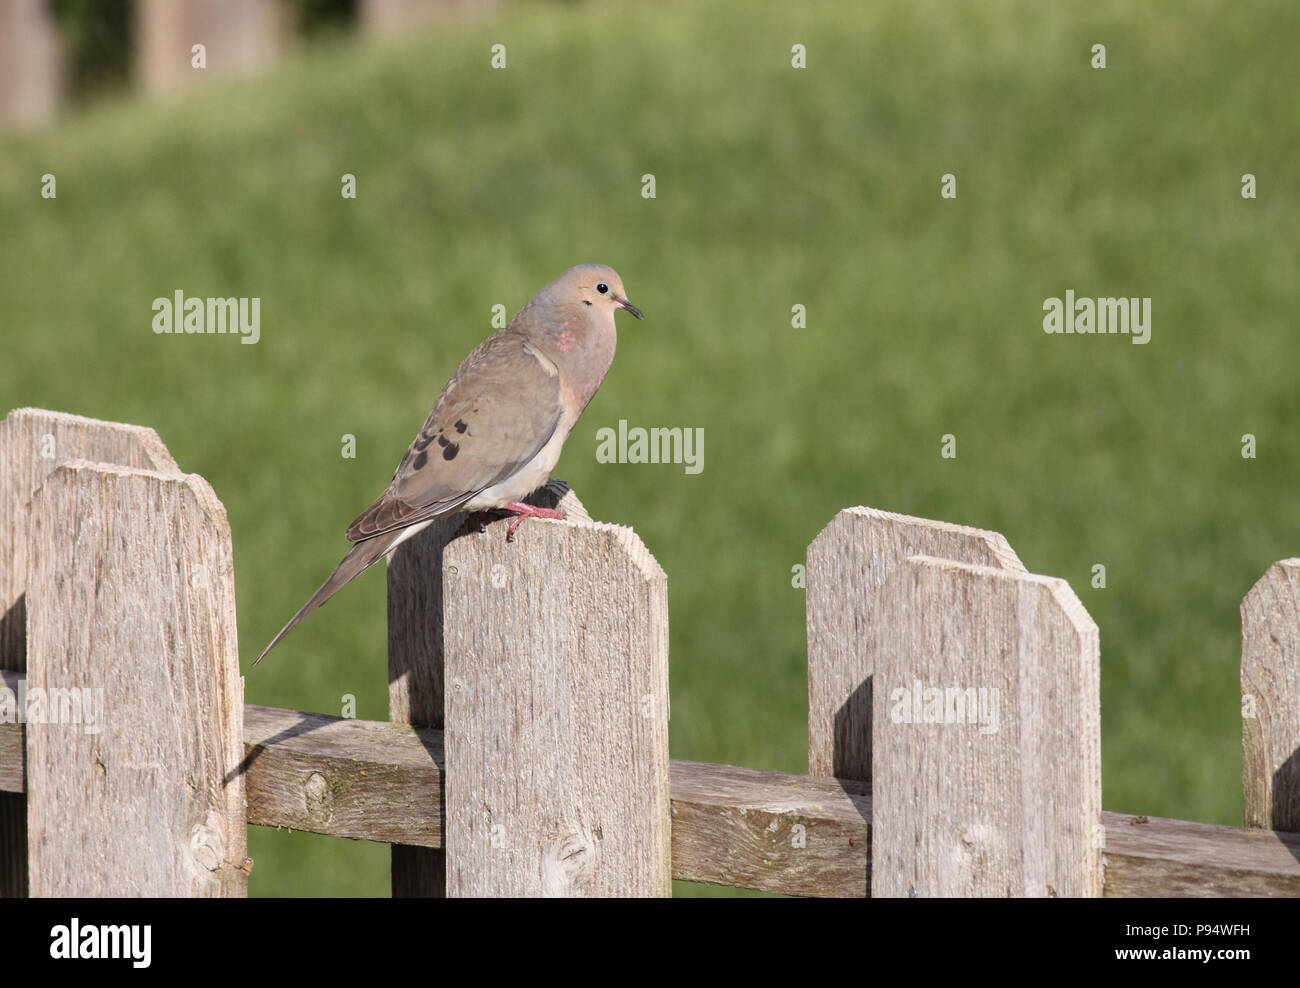 Mourning Dove on wooden fence post, taken in South Dakota, USA - Stock Image